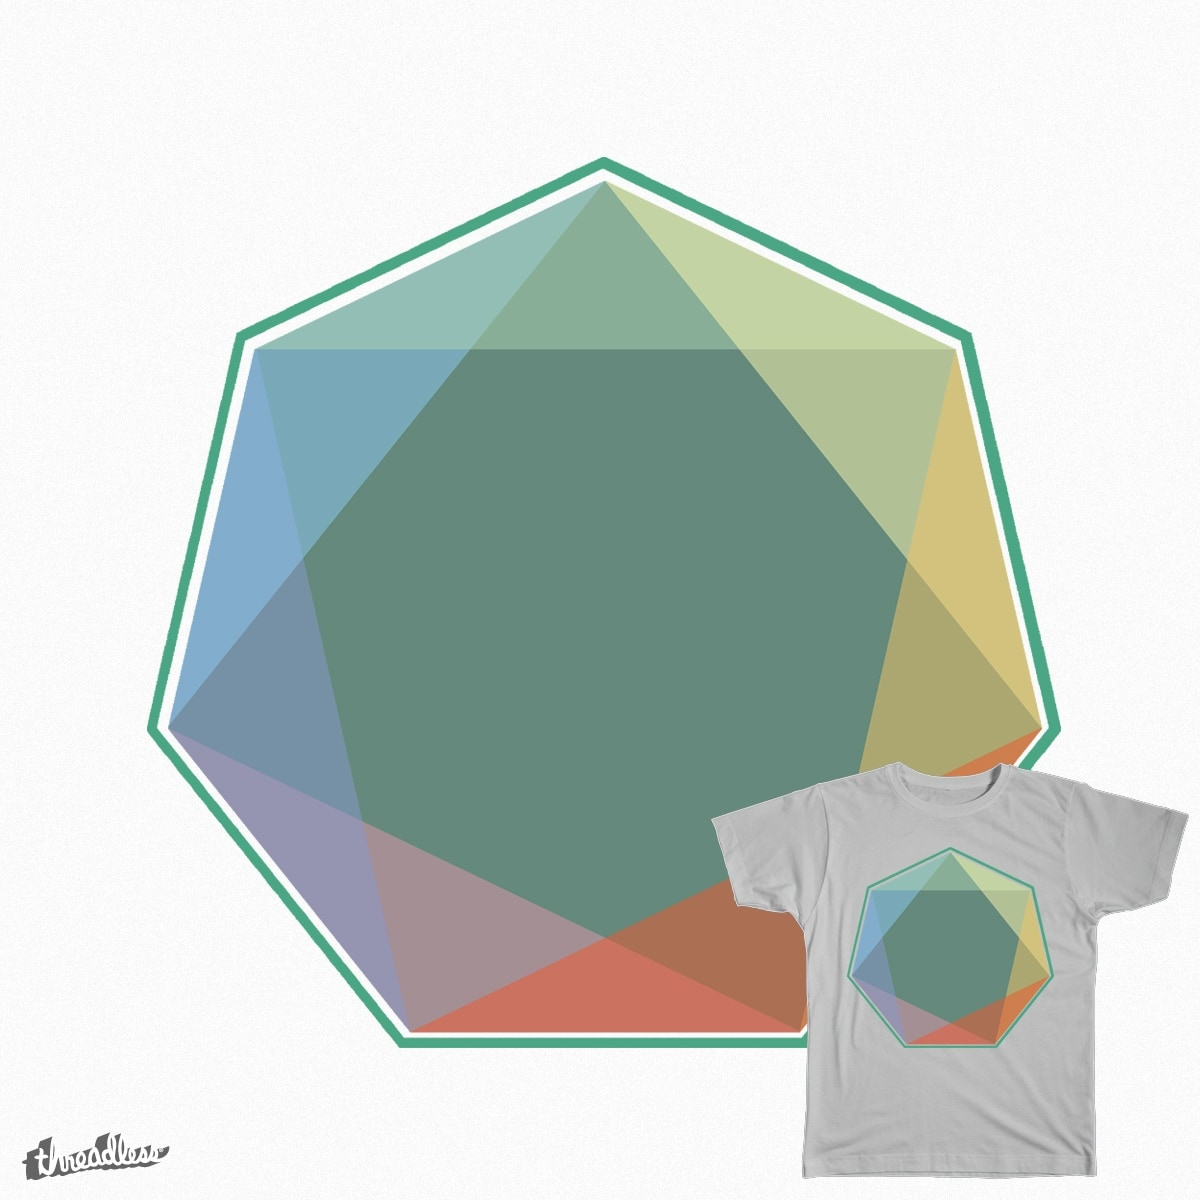 Heptagon by NK1112 on Threadless